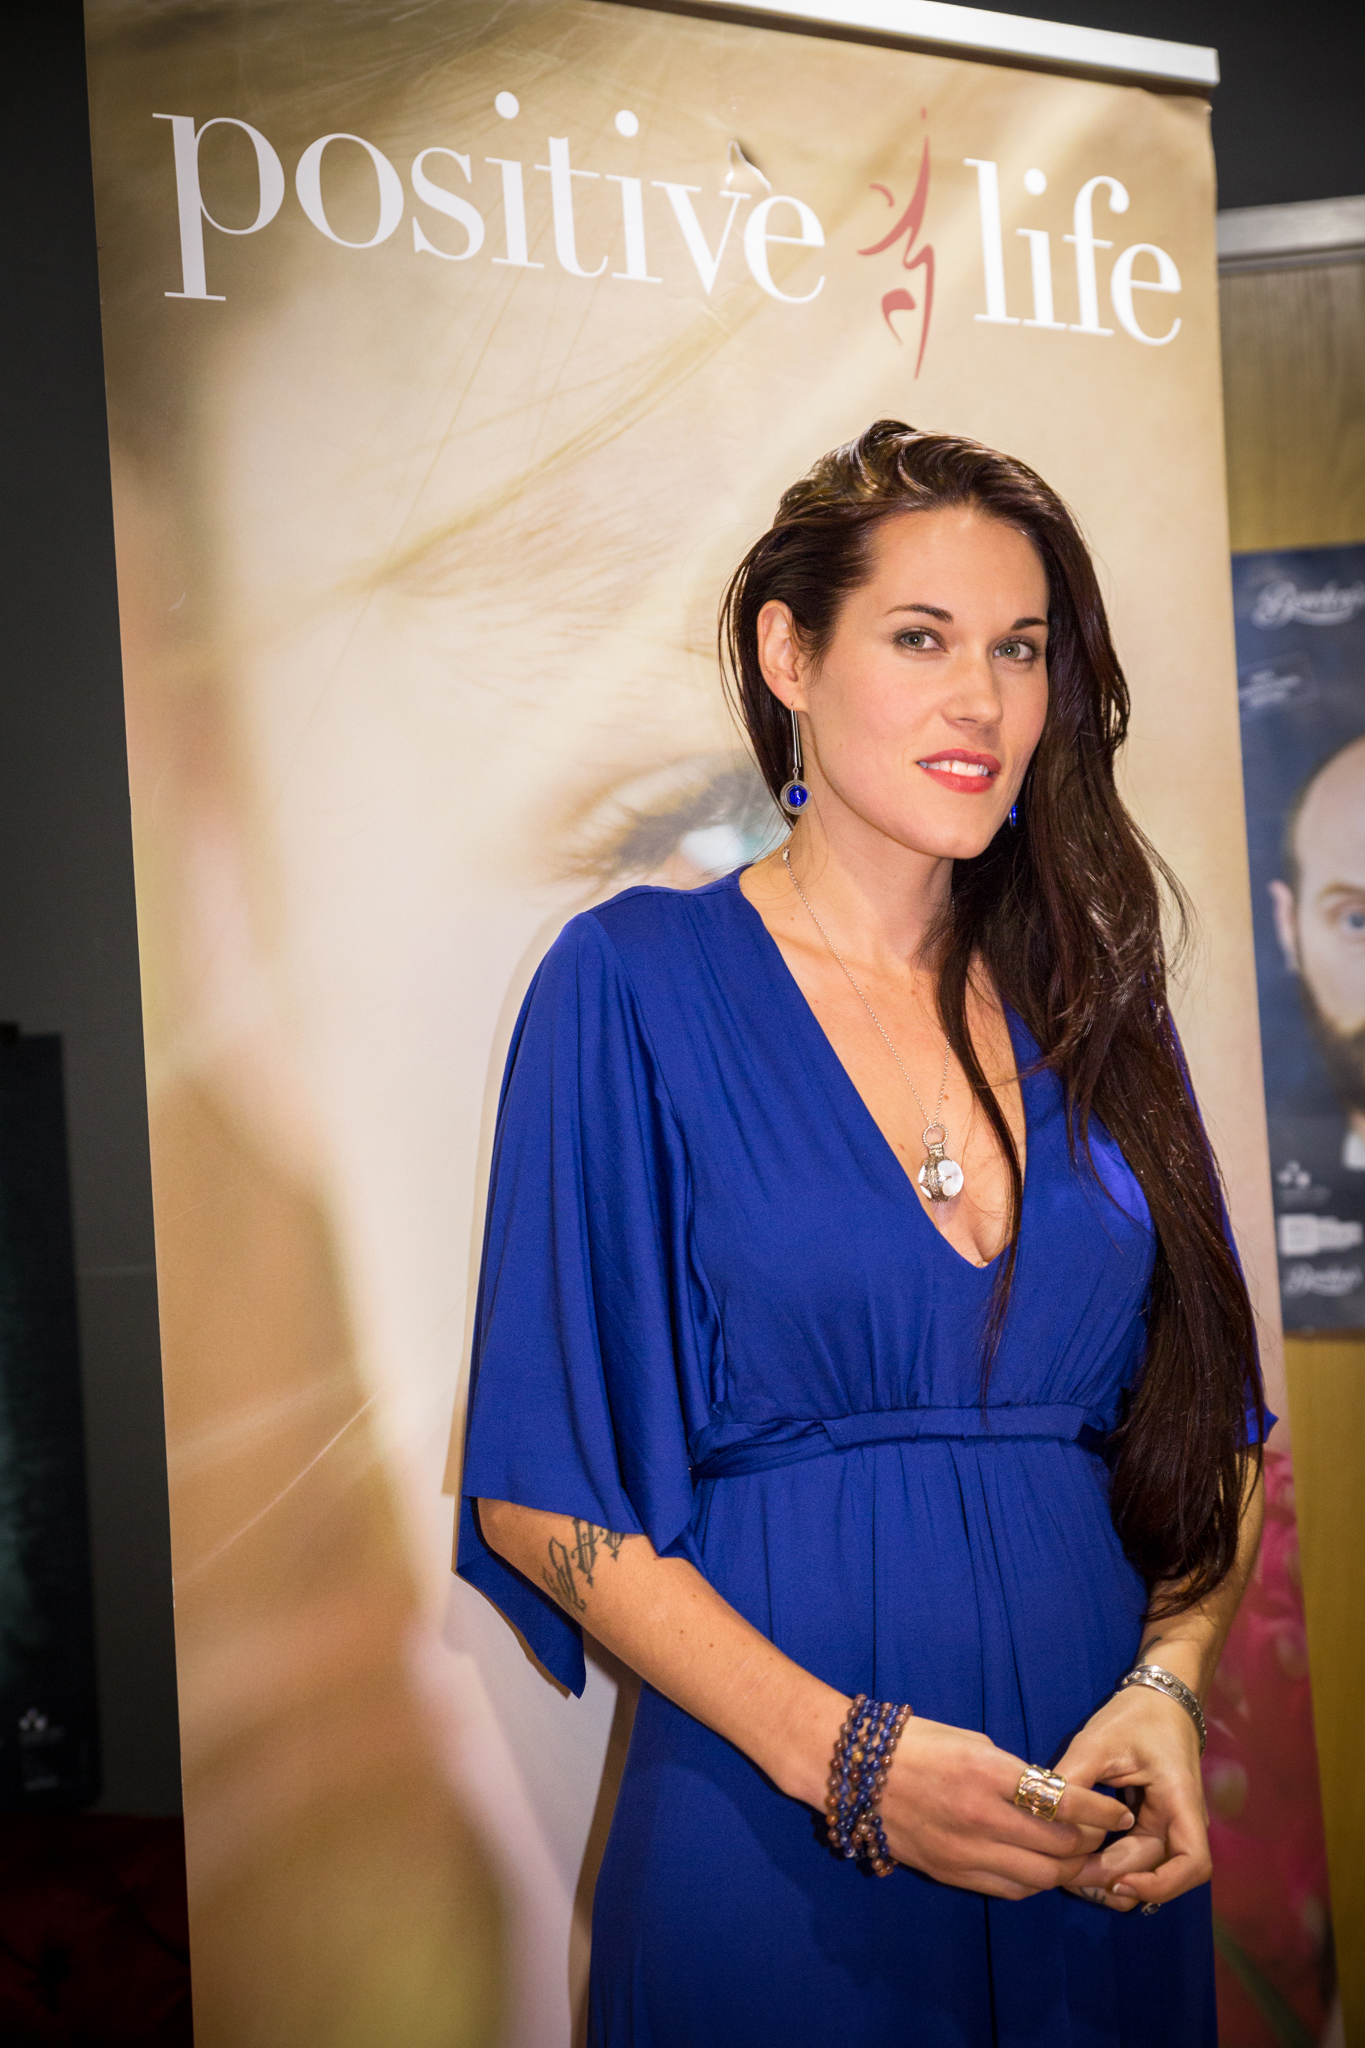 Teal Swan's Positive Nights Event: The photos!